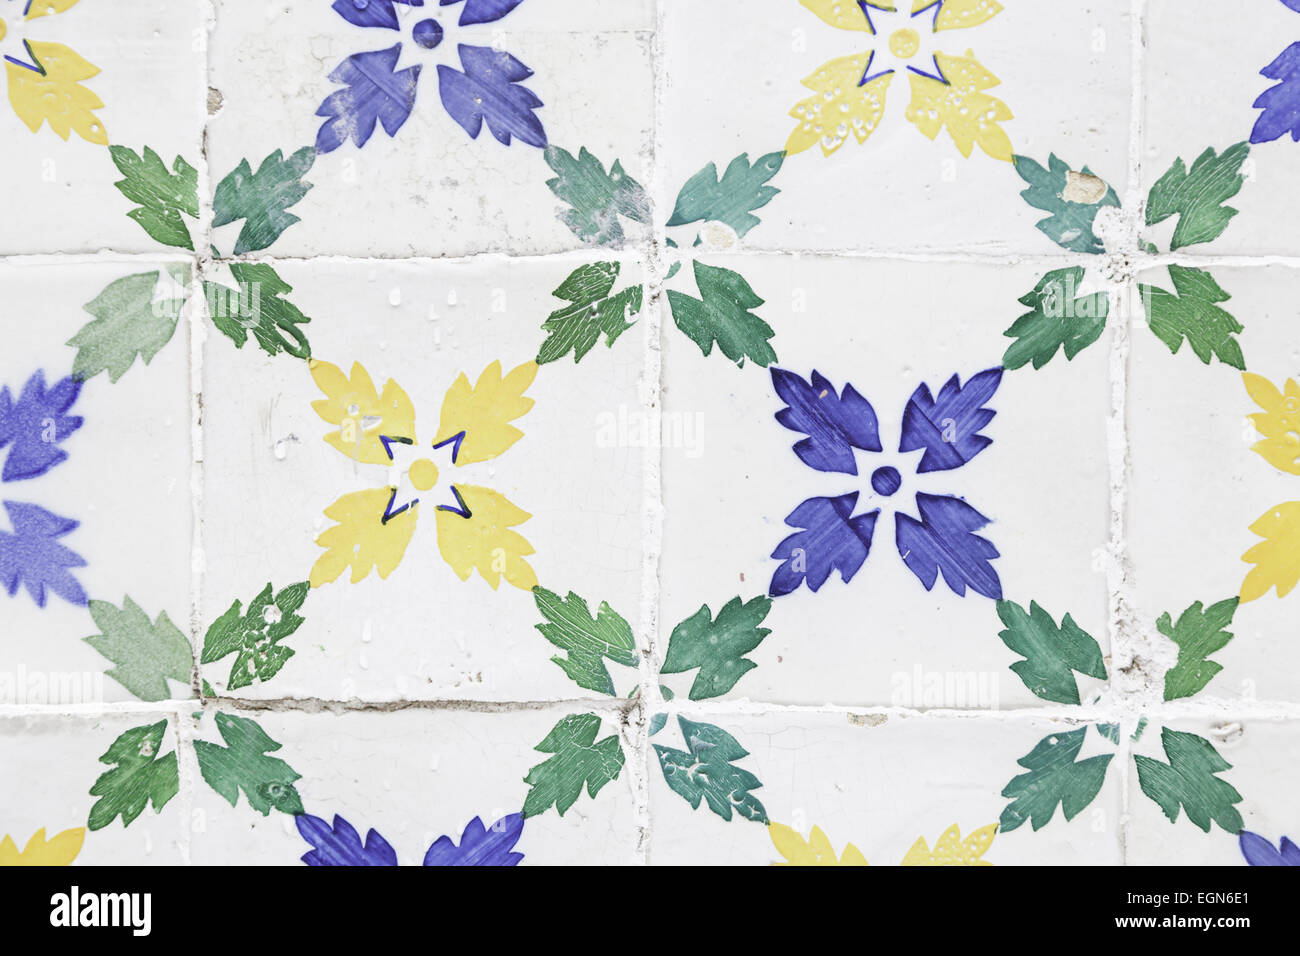 Typical old lisbon tiles detail of a classic ceramic tiles art of typical old lisbon tiles detail of a classic ceramic tiles art of portugal dailygadgetfo Choice Image